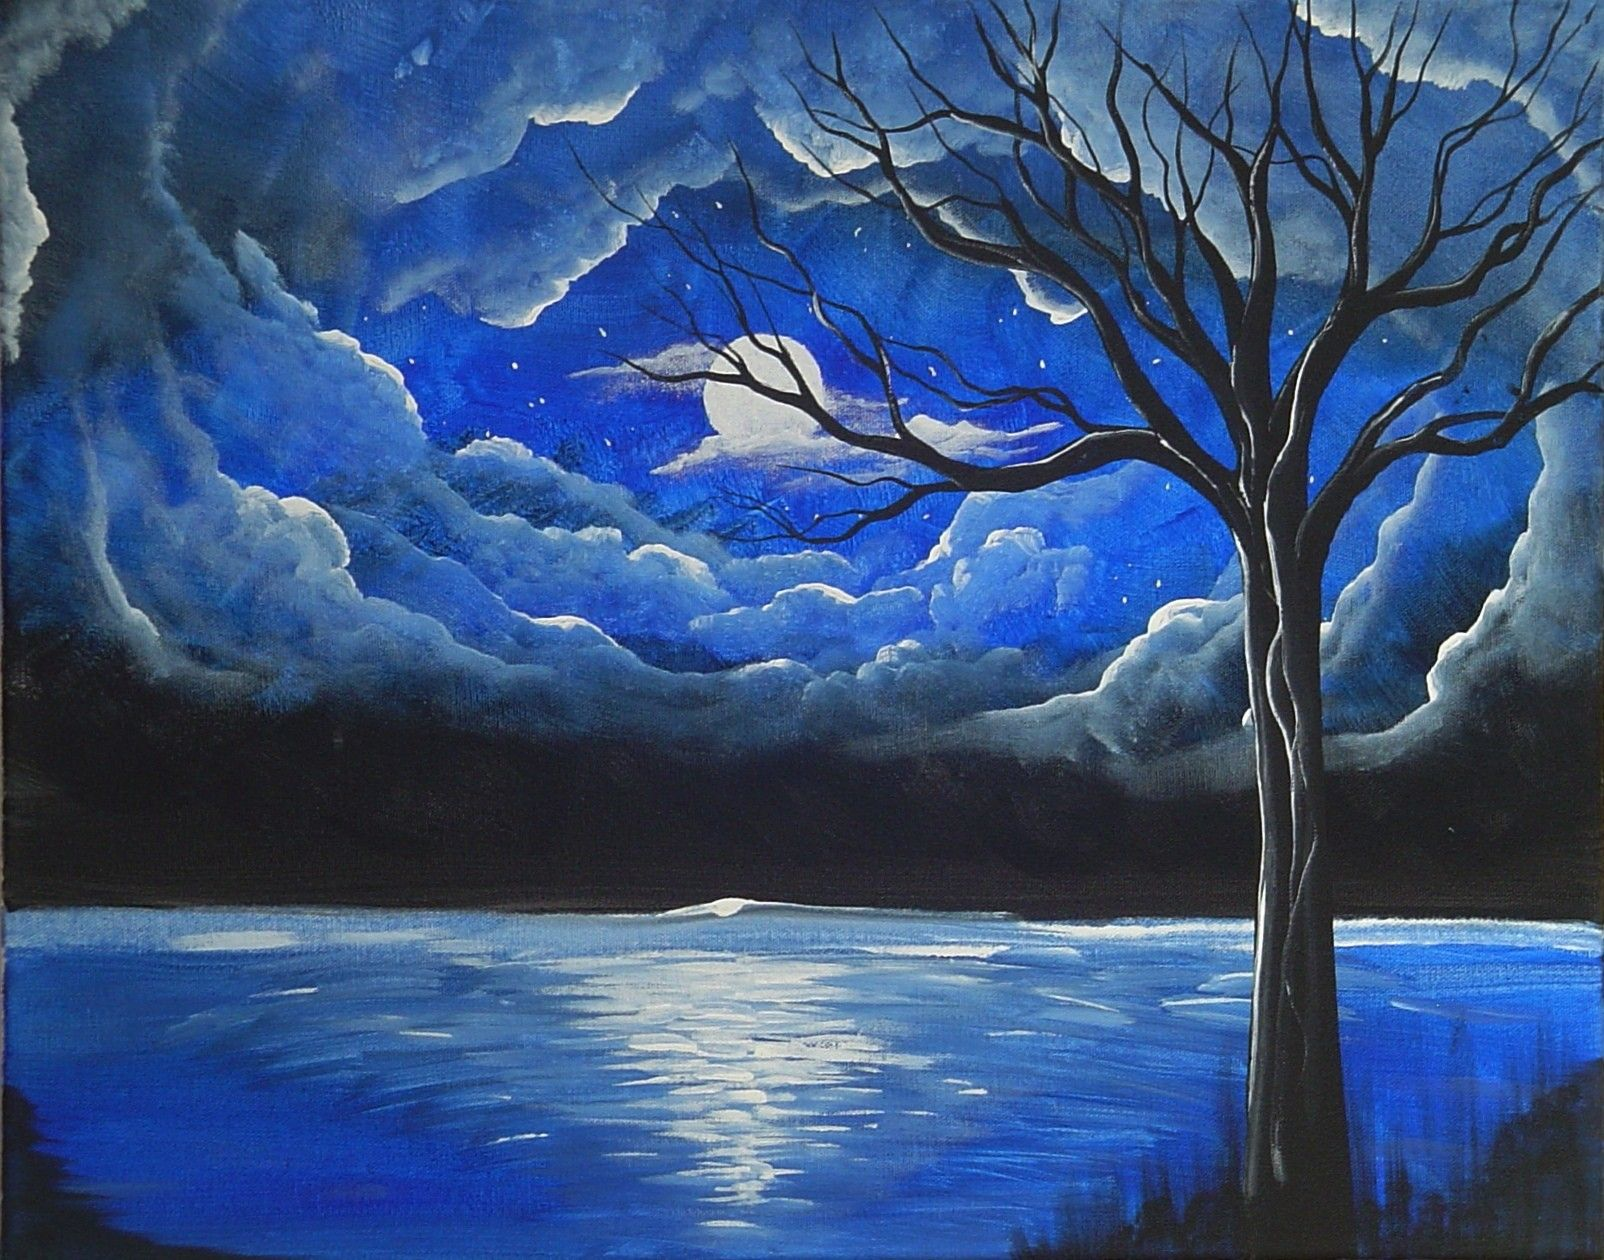 Starry Night Painting Google Search Starry Night Painting Beautiful Scenery Paintings Scenery Paintings